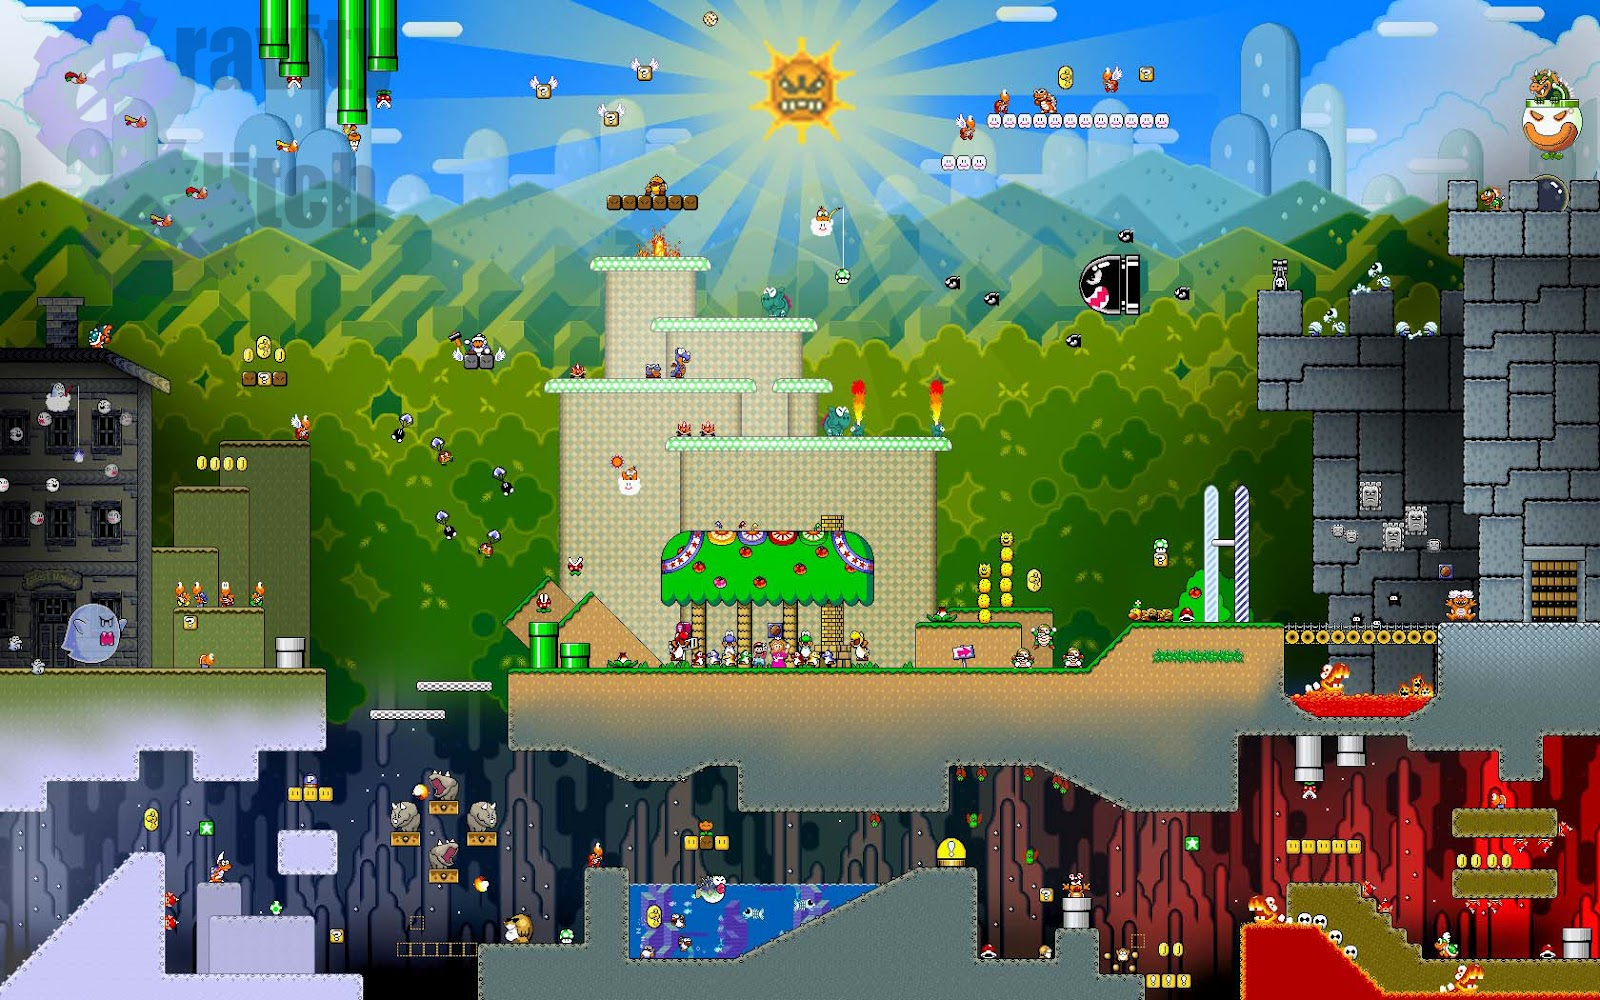 Video game gallery wallpaper avatars more super mario world map level classic wallpaper background super nintendo nes system img image picture pic gumiabroncs Gallery